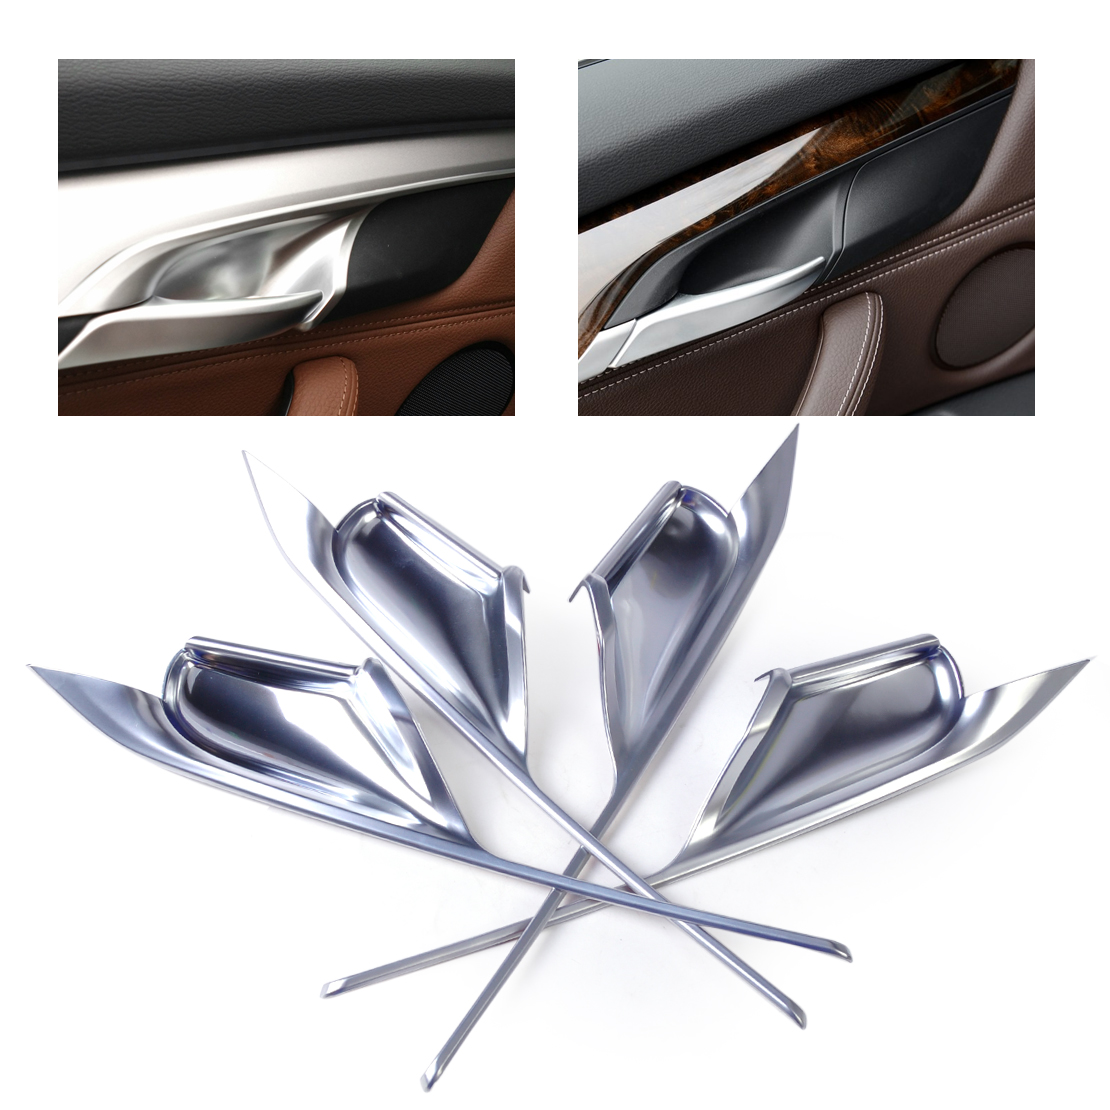 beler New 4pcs Silver Chrome Plated Interior Door Handle Bowl Cover Trim Car Decoration Fit for BMW X5 F15 X6 F16 2014 2015 2016